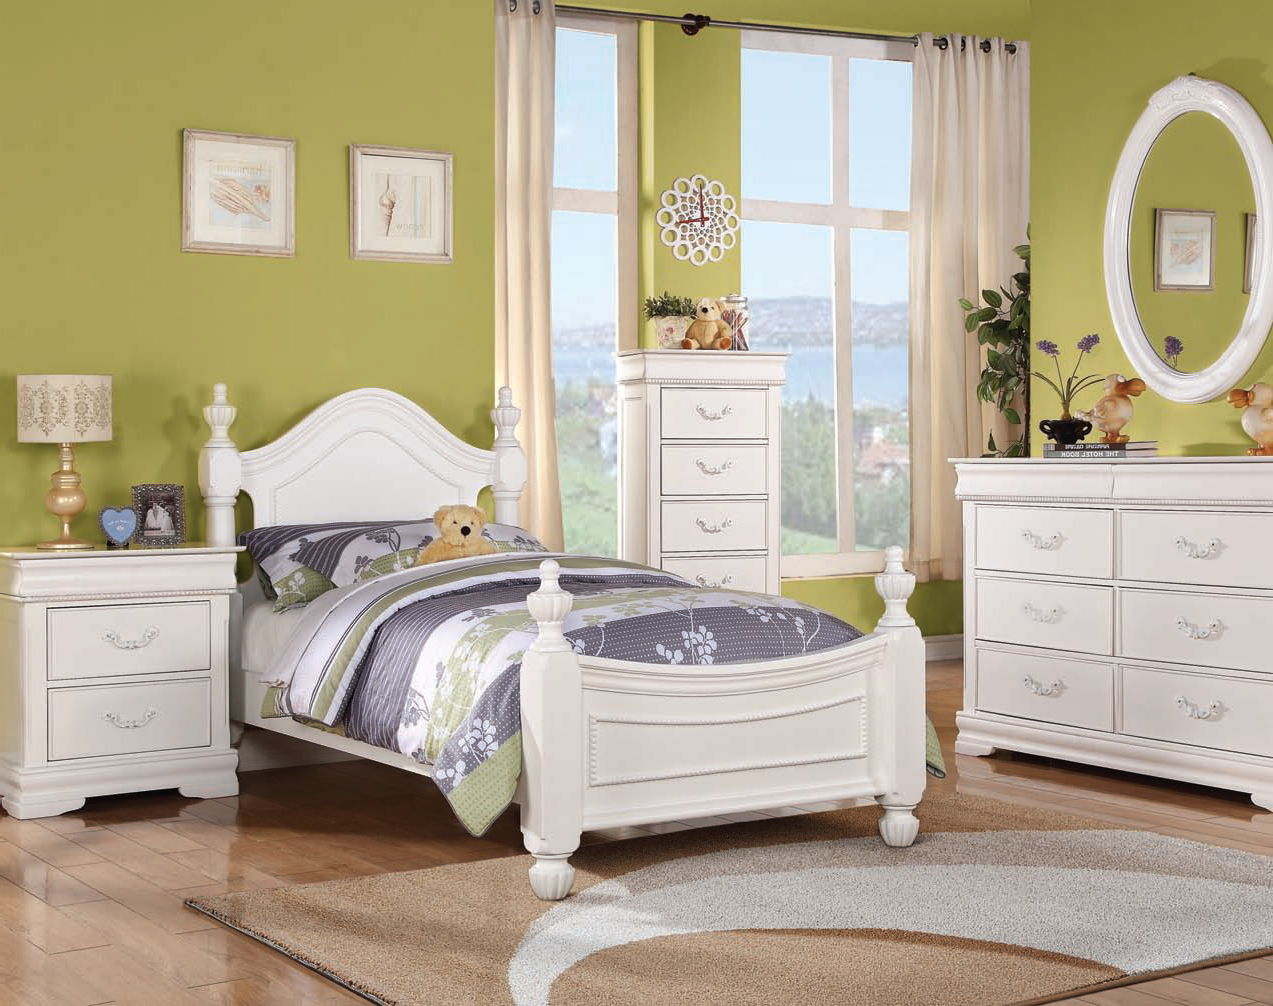 Classique youth white wood master bedroom set bedrooms for Good deals on bedroom sets